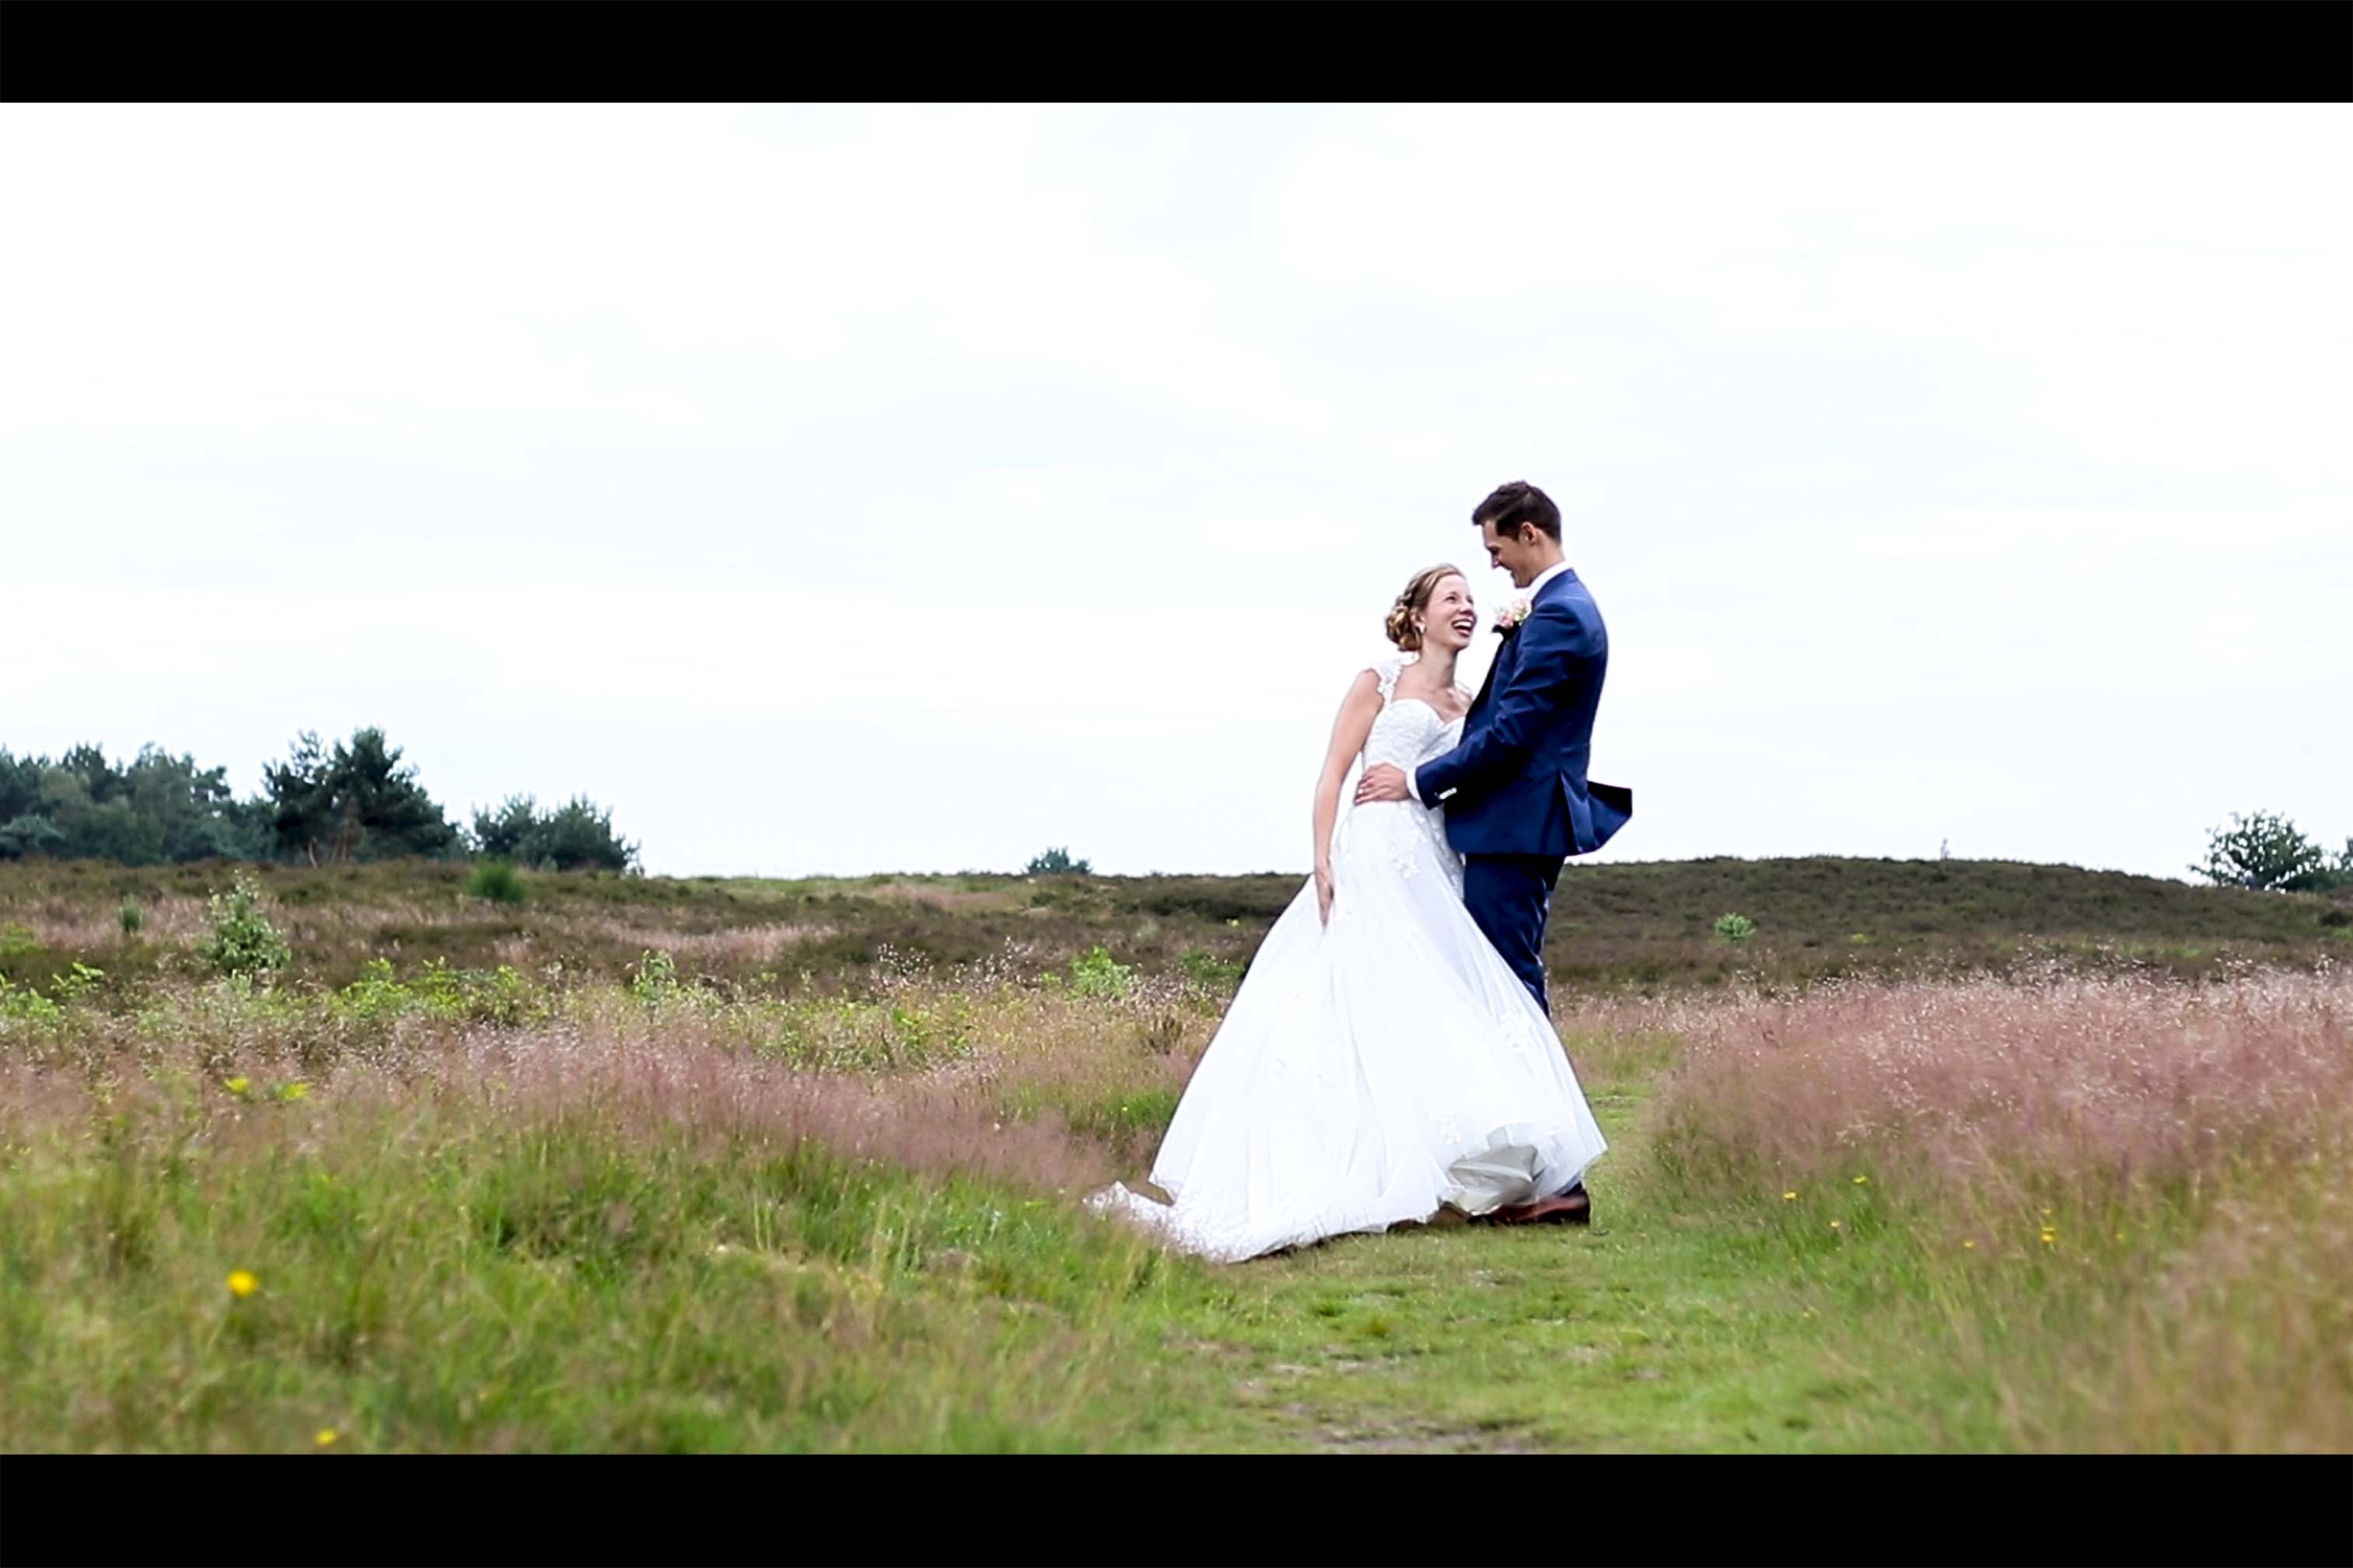 Storytime Media, videograaf, trouwfilms, trouwclip, trouwfilm, trouwvideo, trouwvideograaf nunspeet, gelderland